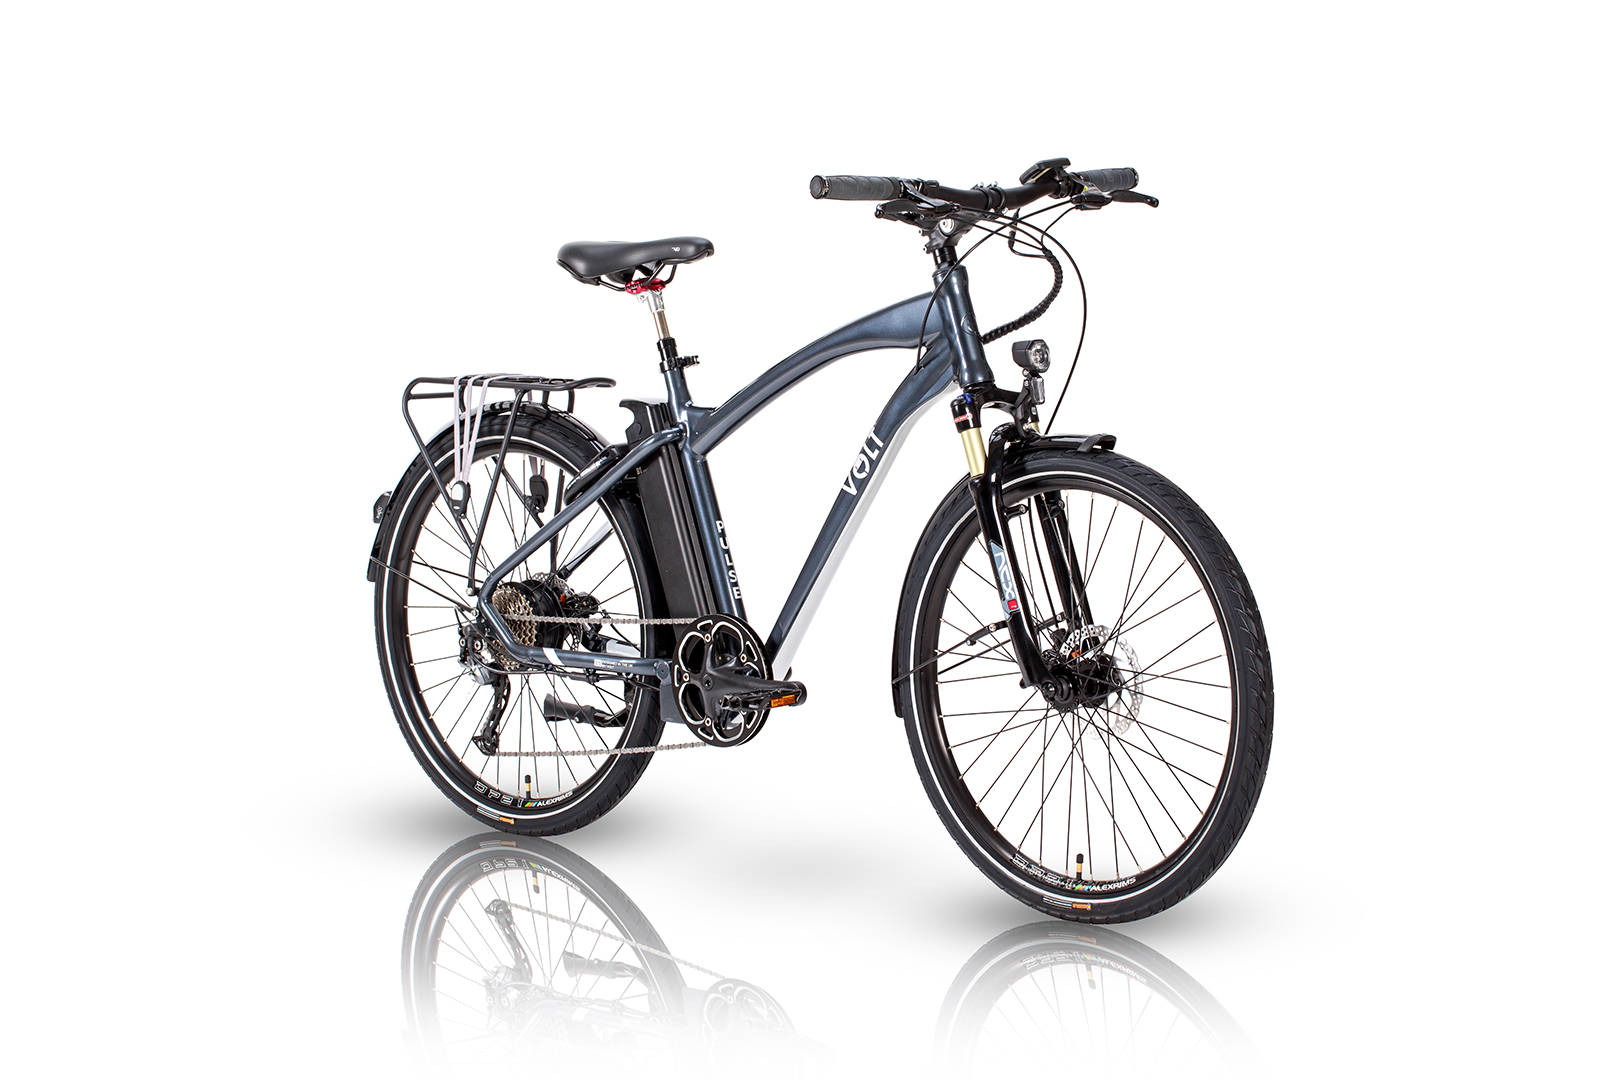 Pulse Hybrid electric bike, studio photograph viewed at an angle with a white background